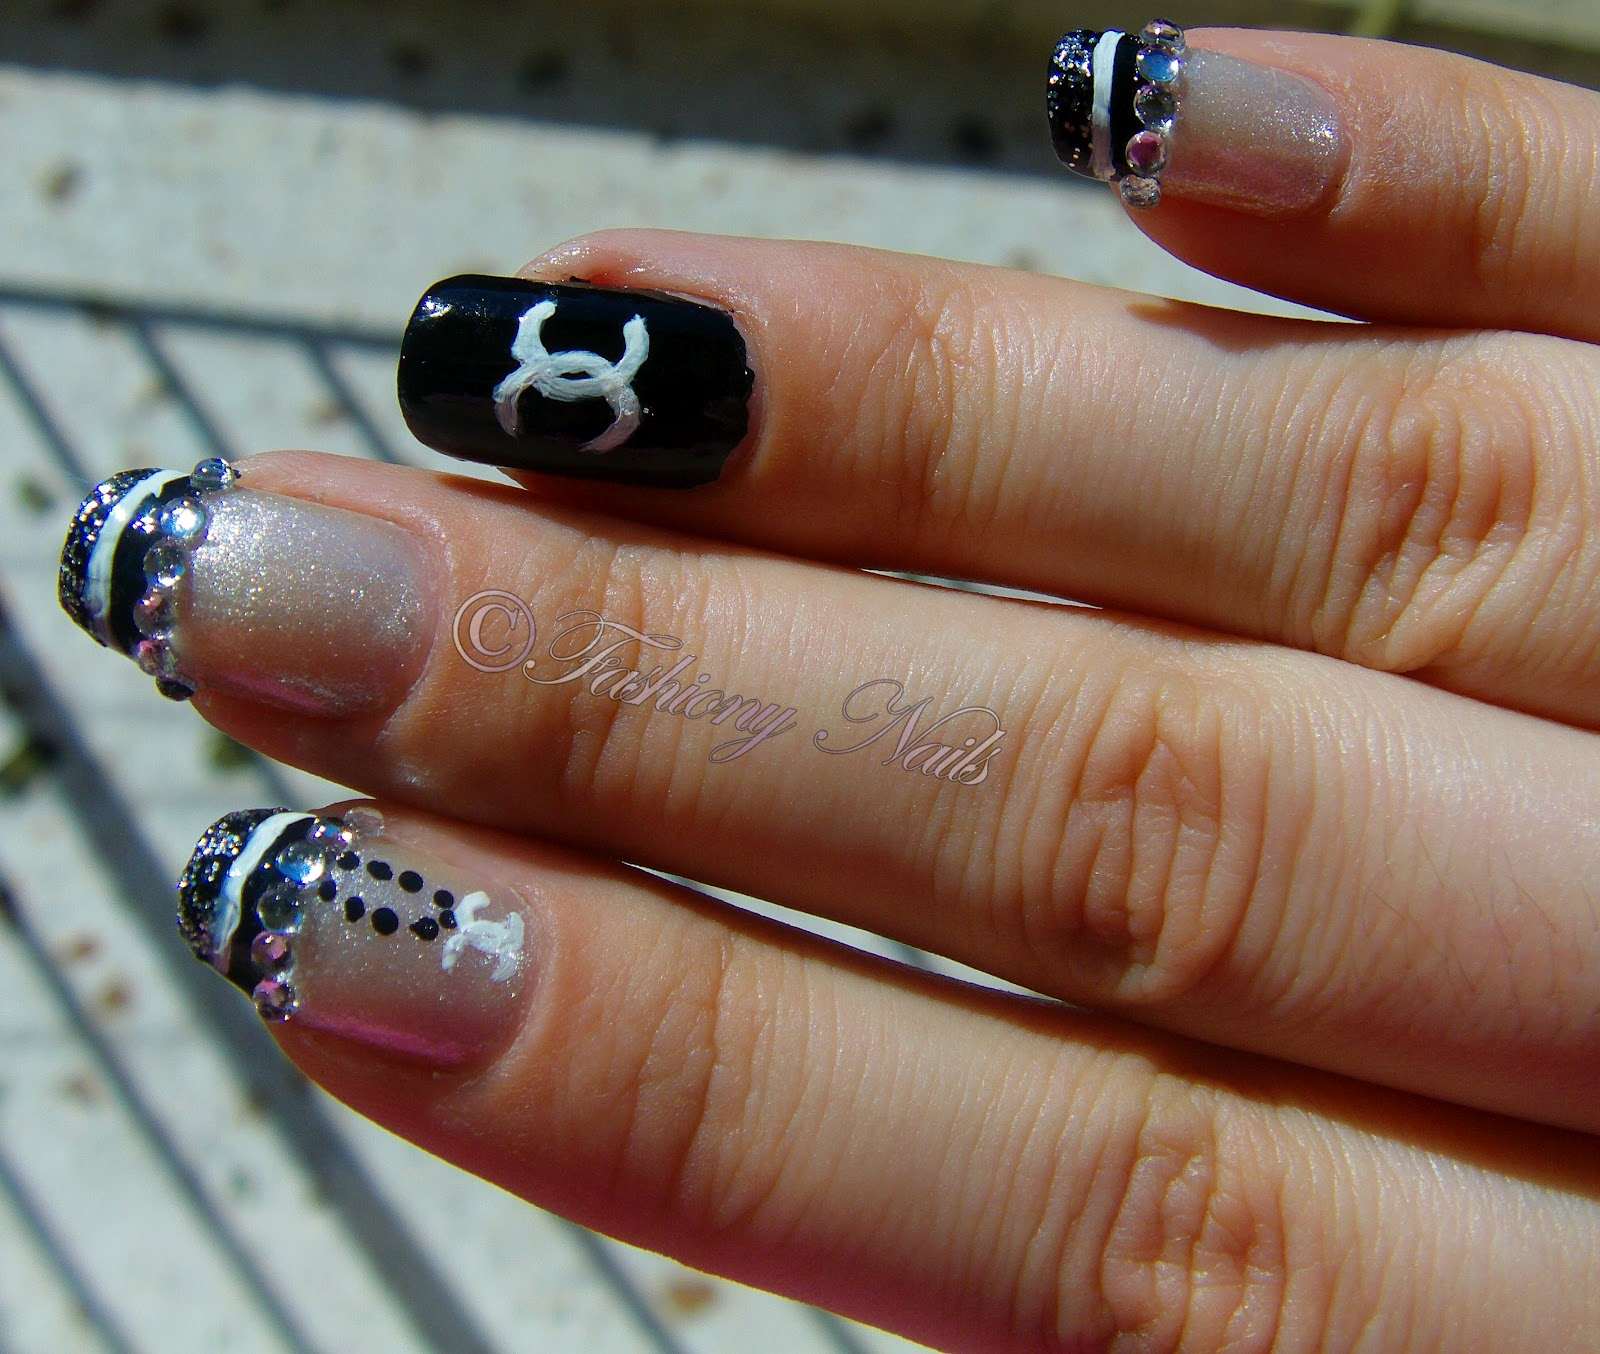 Chanel nail design fashiony nails beauty blog chanel nail design prinsesfo Image collections